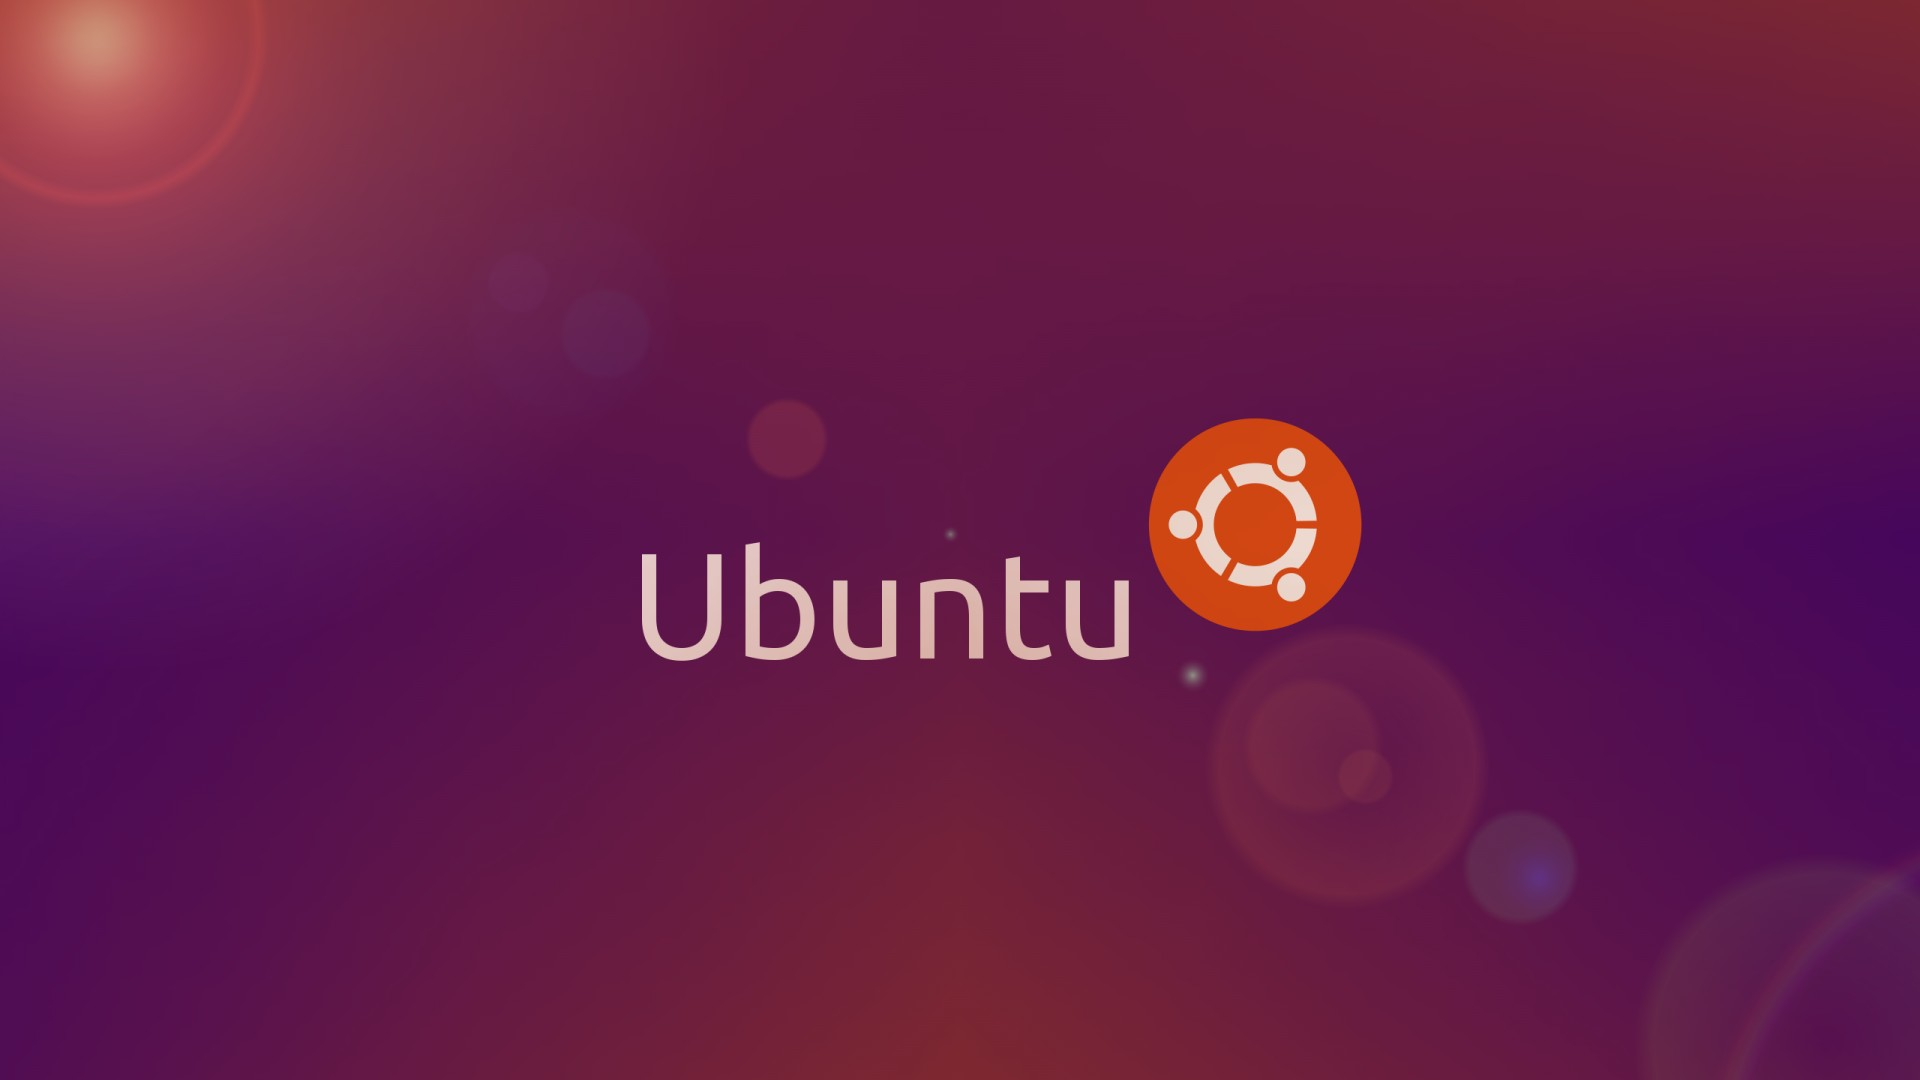 Ubuntu Wallpapers High Quality